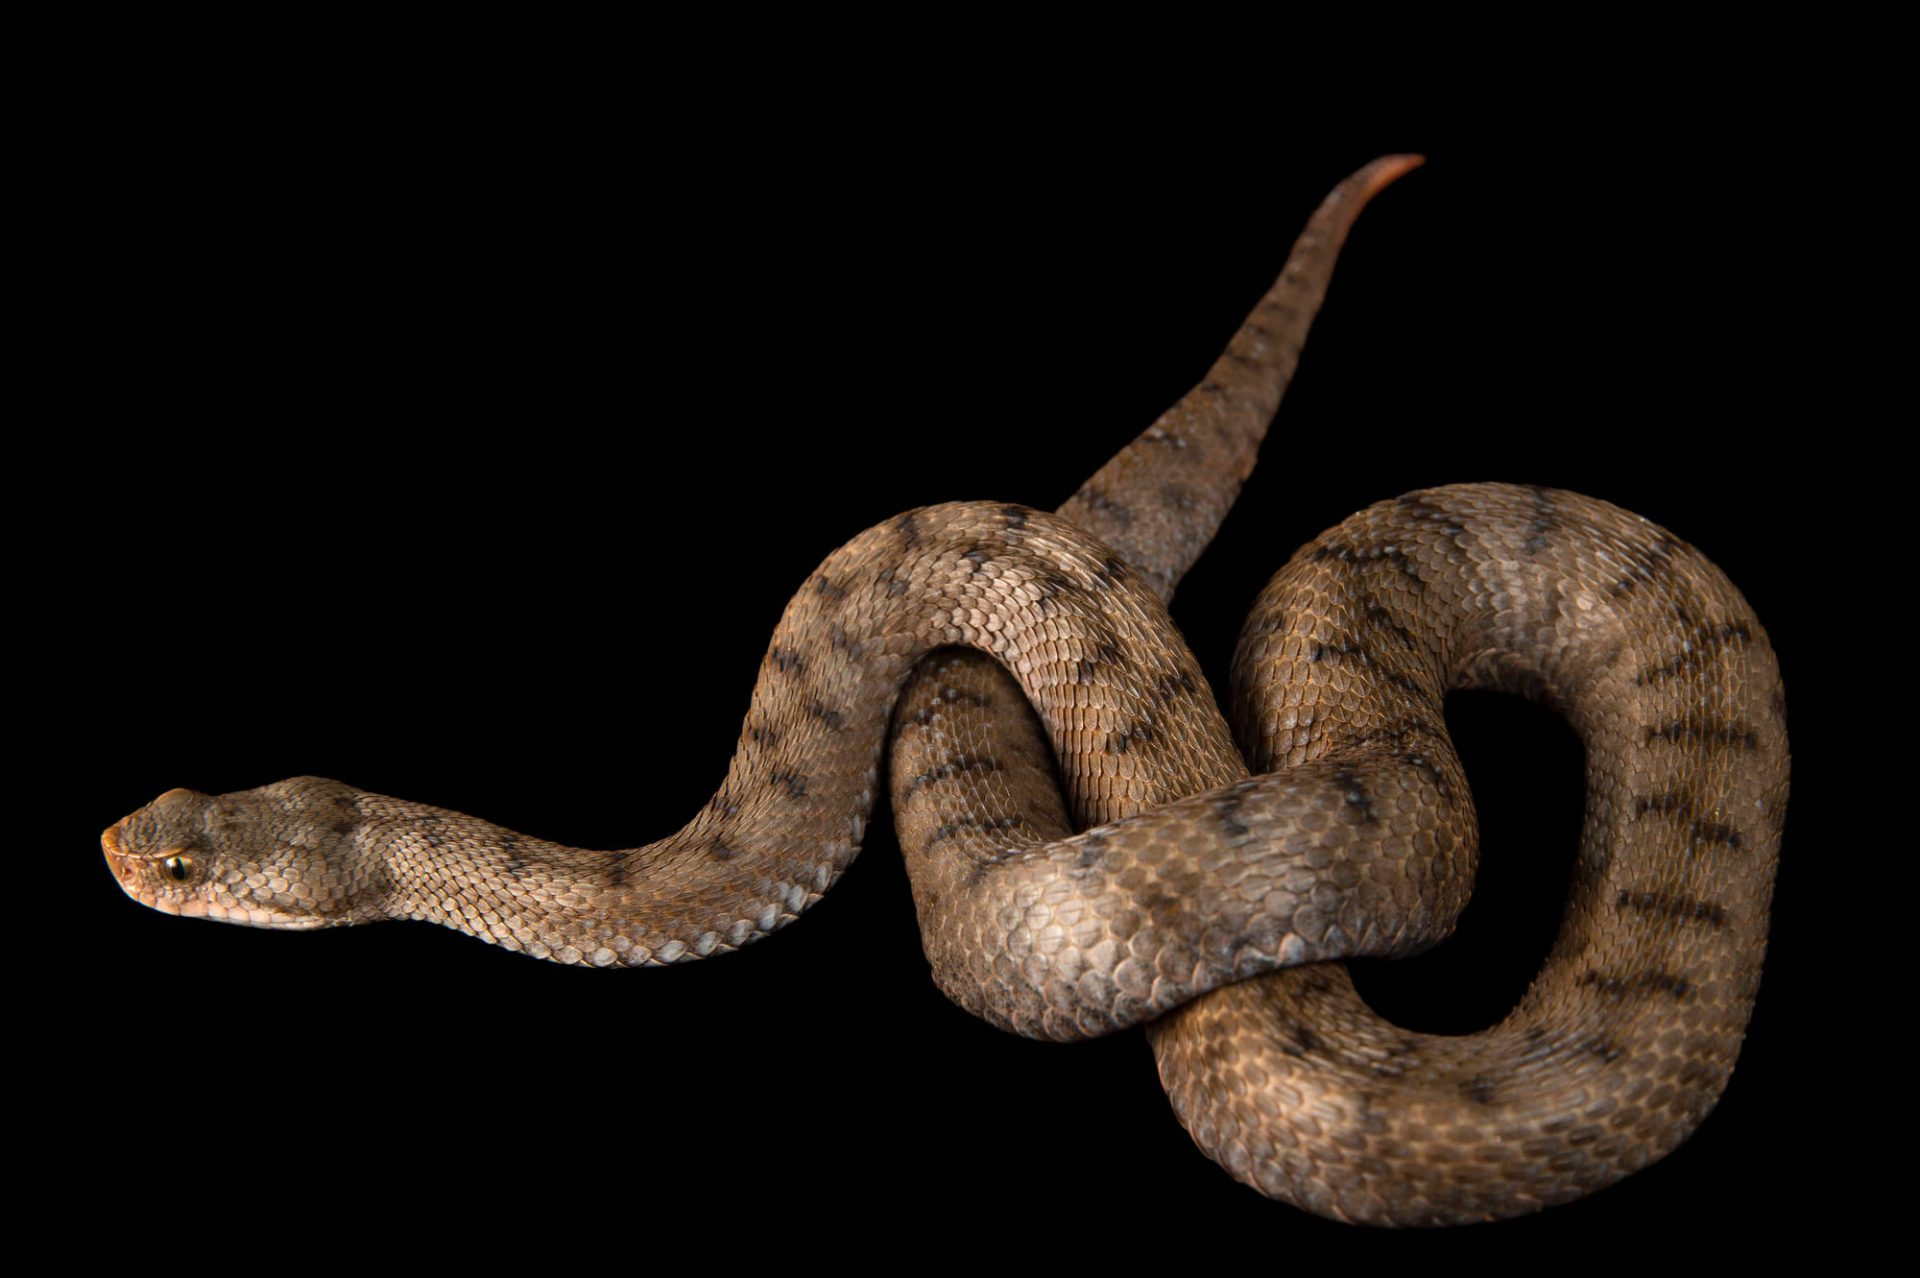 Picture of an asp viper (Vipera aspis aspis) at the St. Louis Zoo.